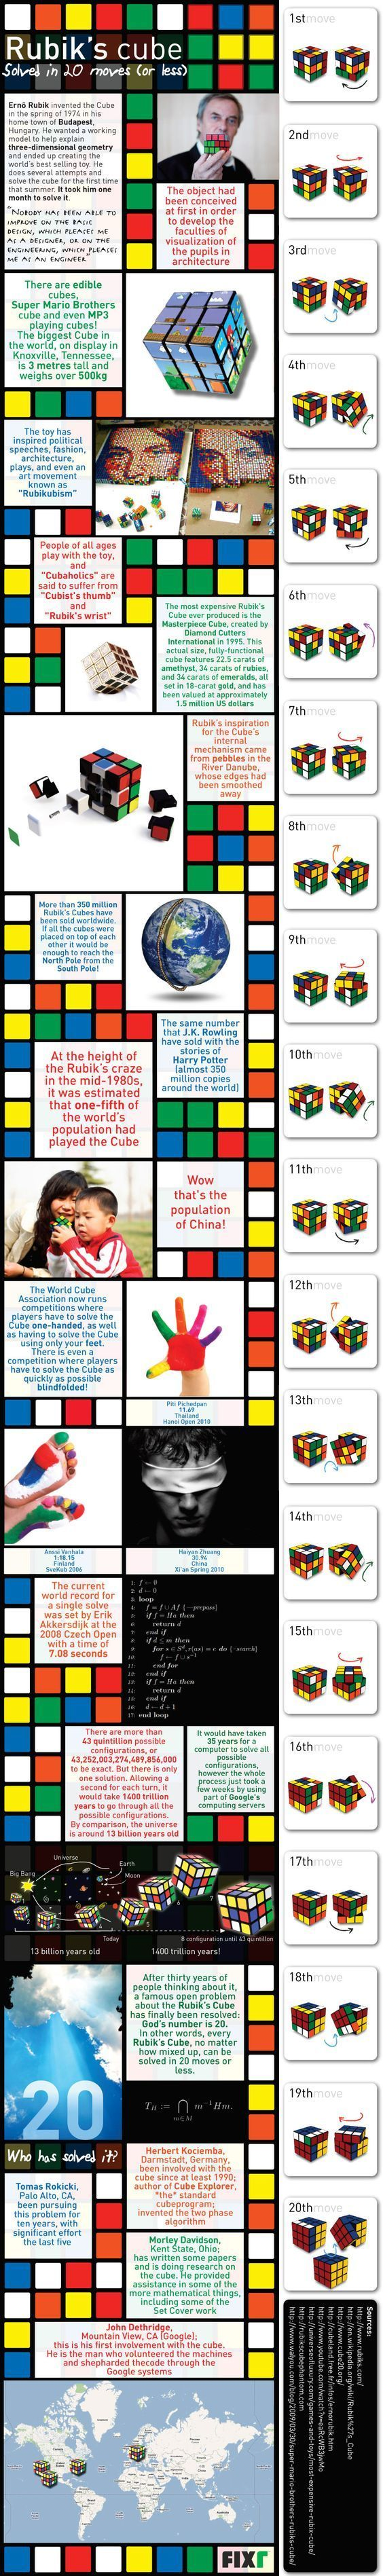 The Rubik's Cube [Infographic]   Daily Infographic